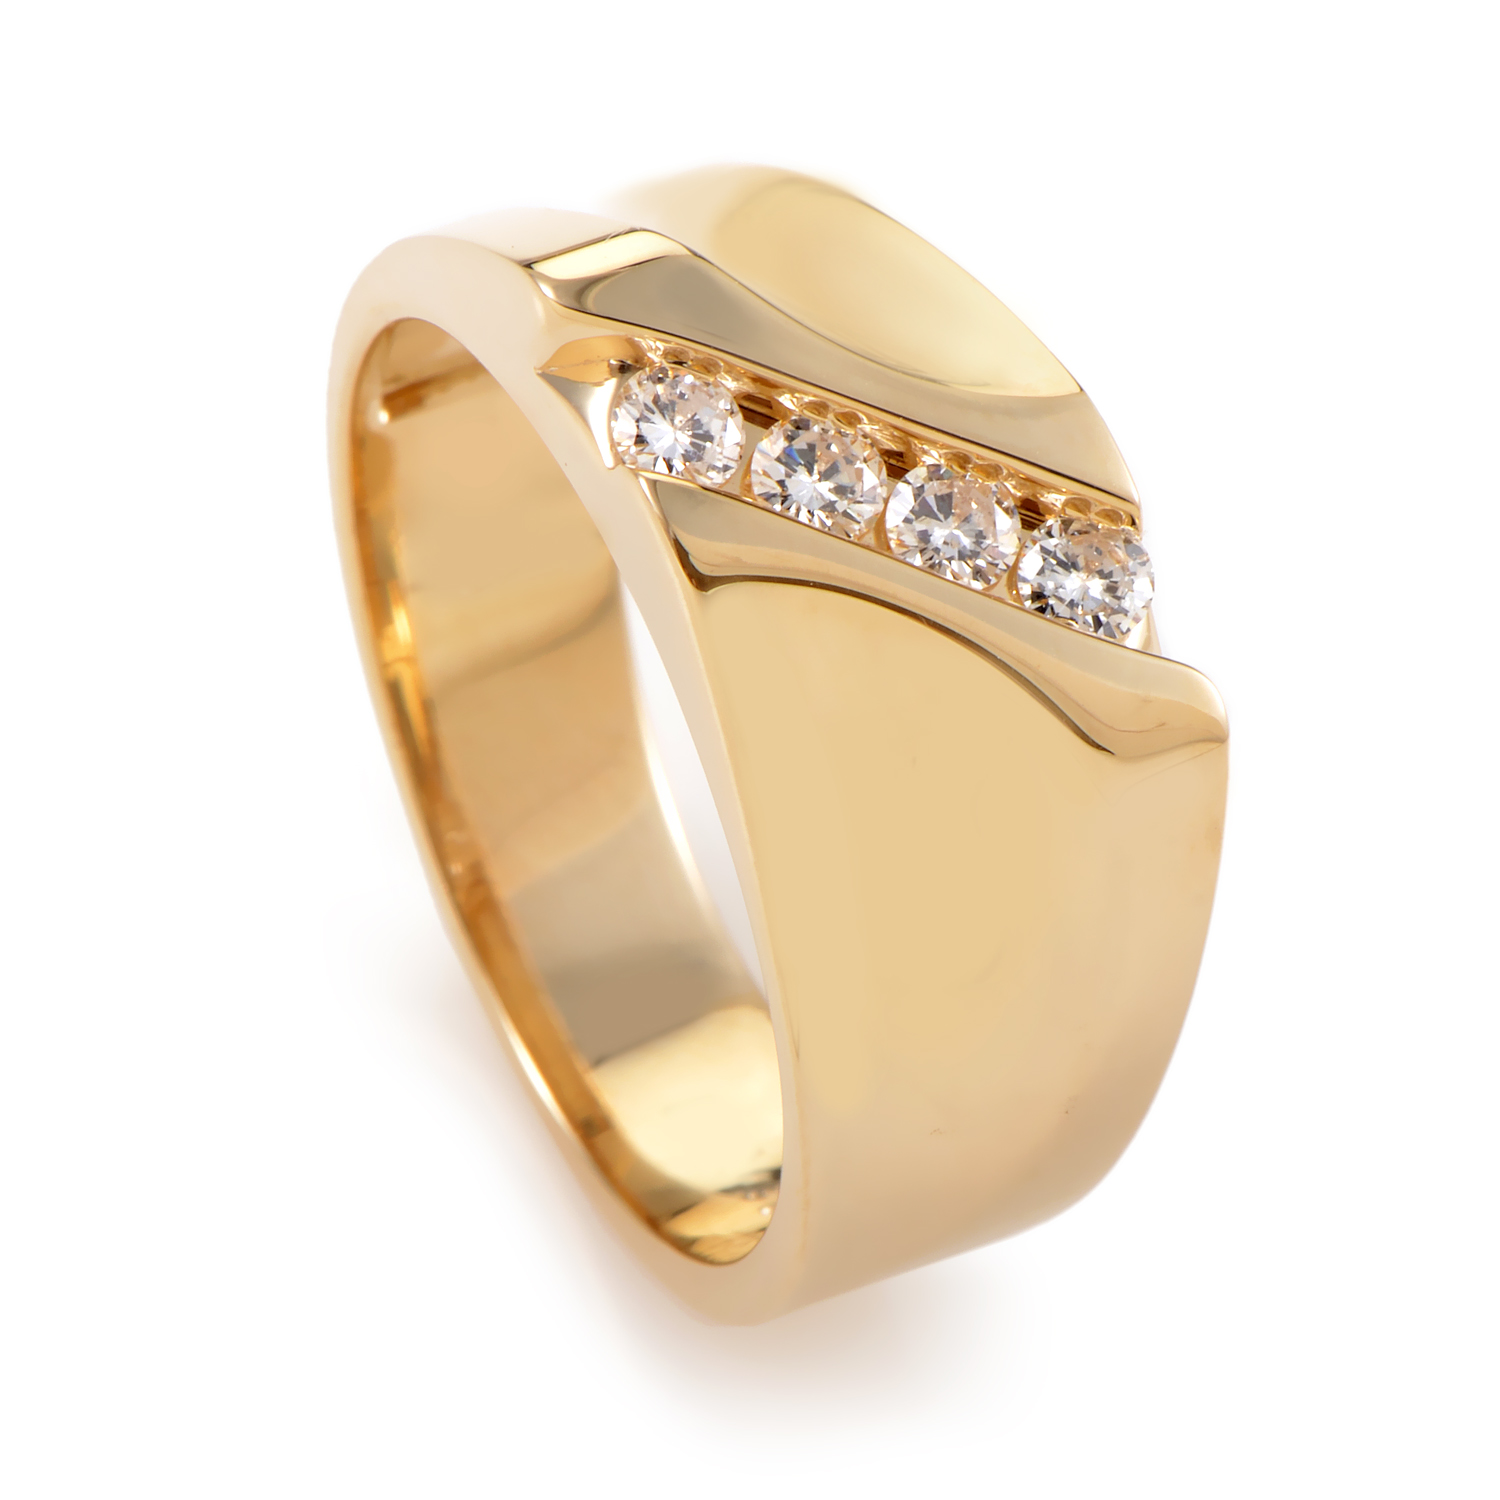 Men's 14K Yellow Gold Diamond Ring 56530AXX4X